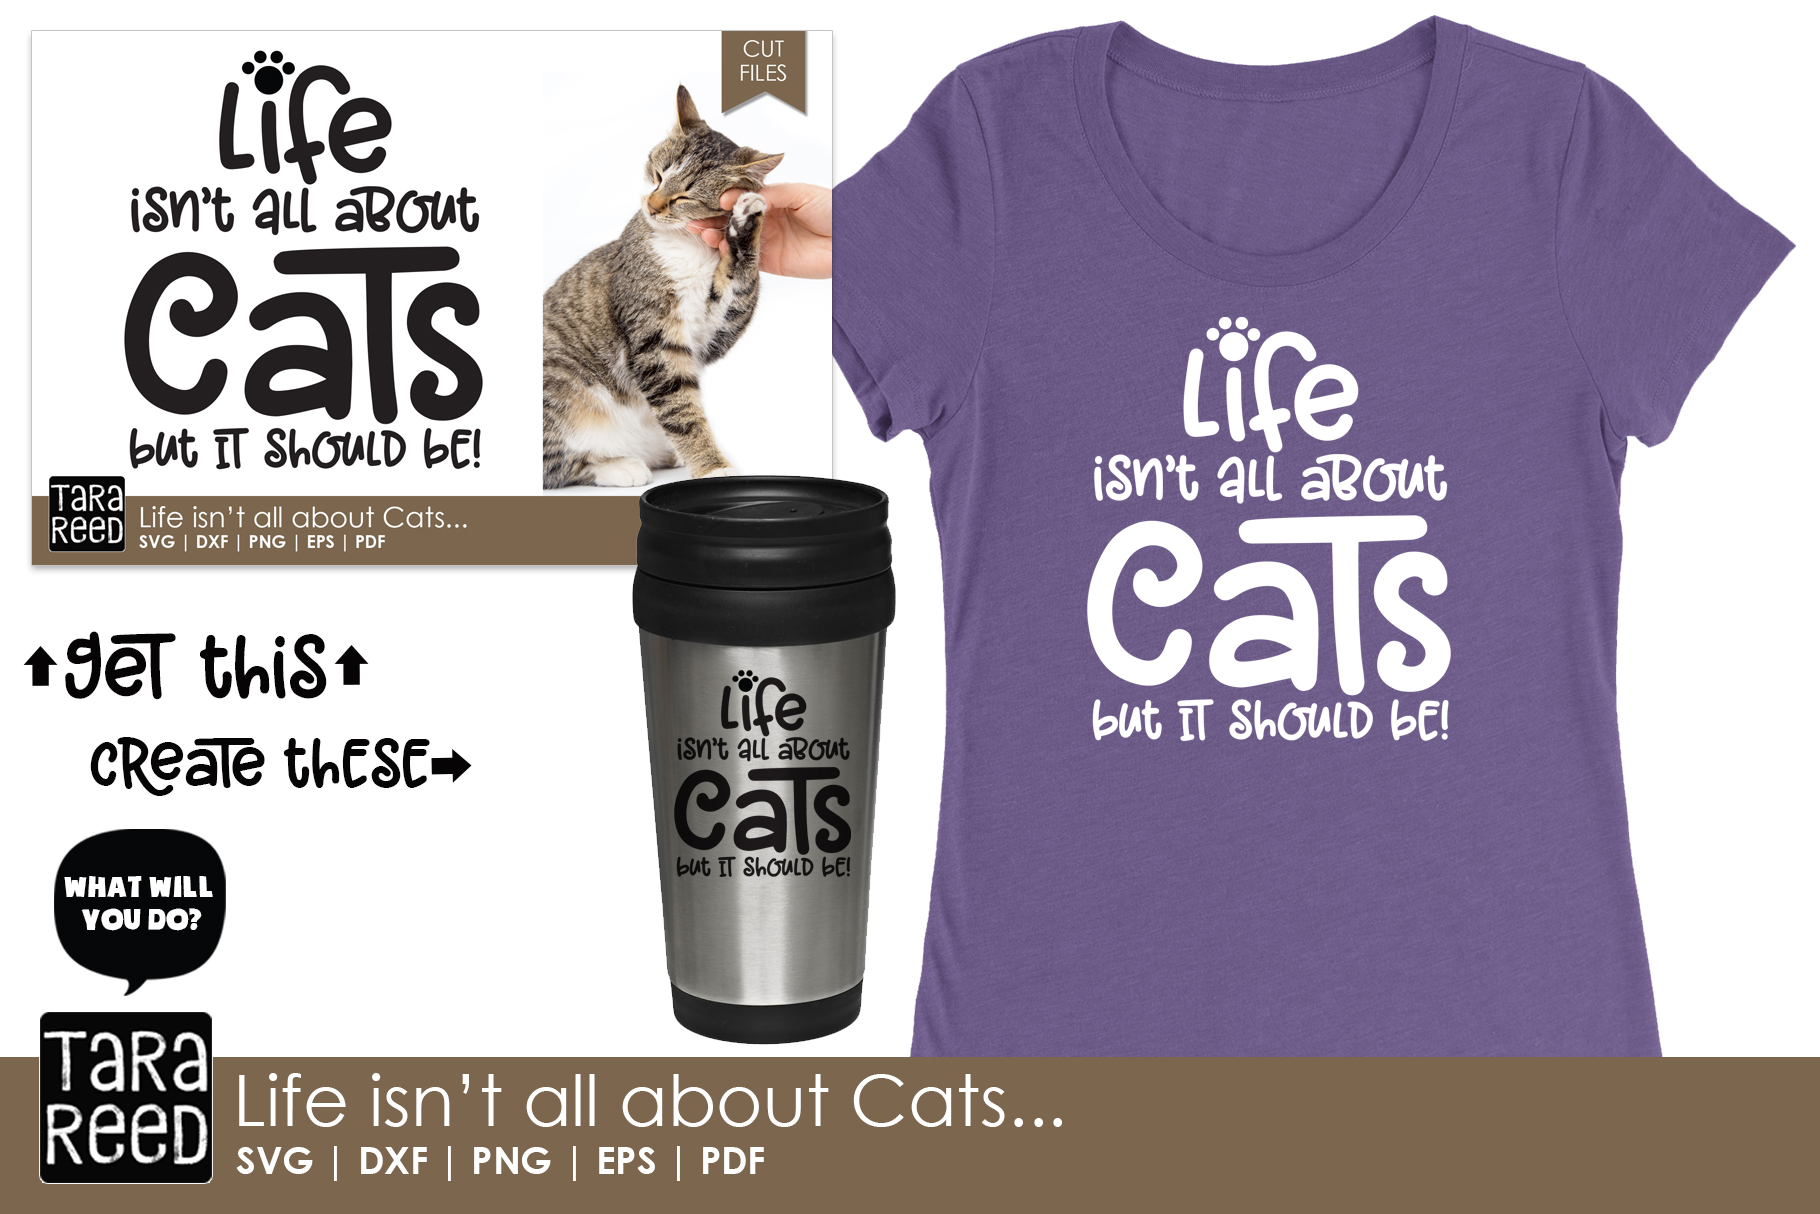 Life isn't all about Cats - Cat SVG and Cut Files example image 2